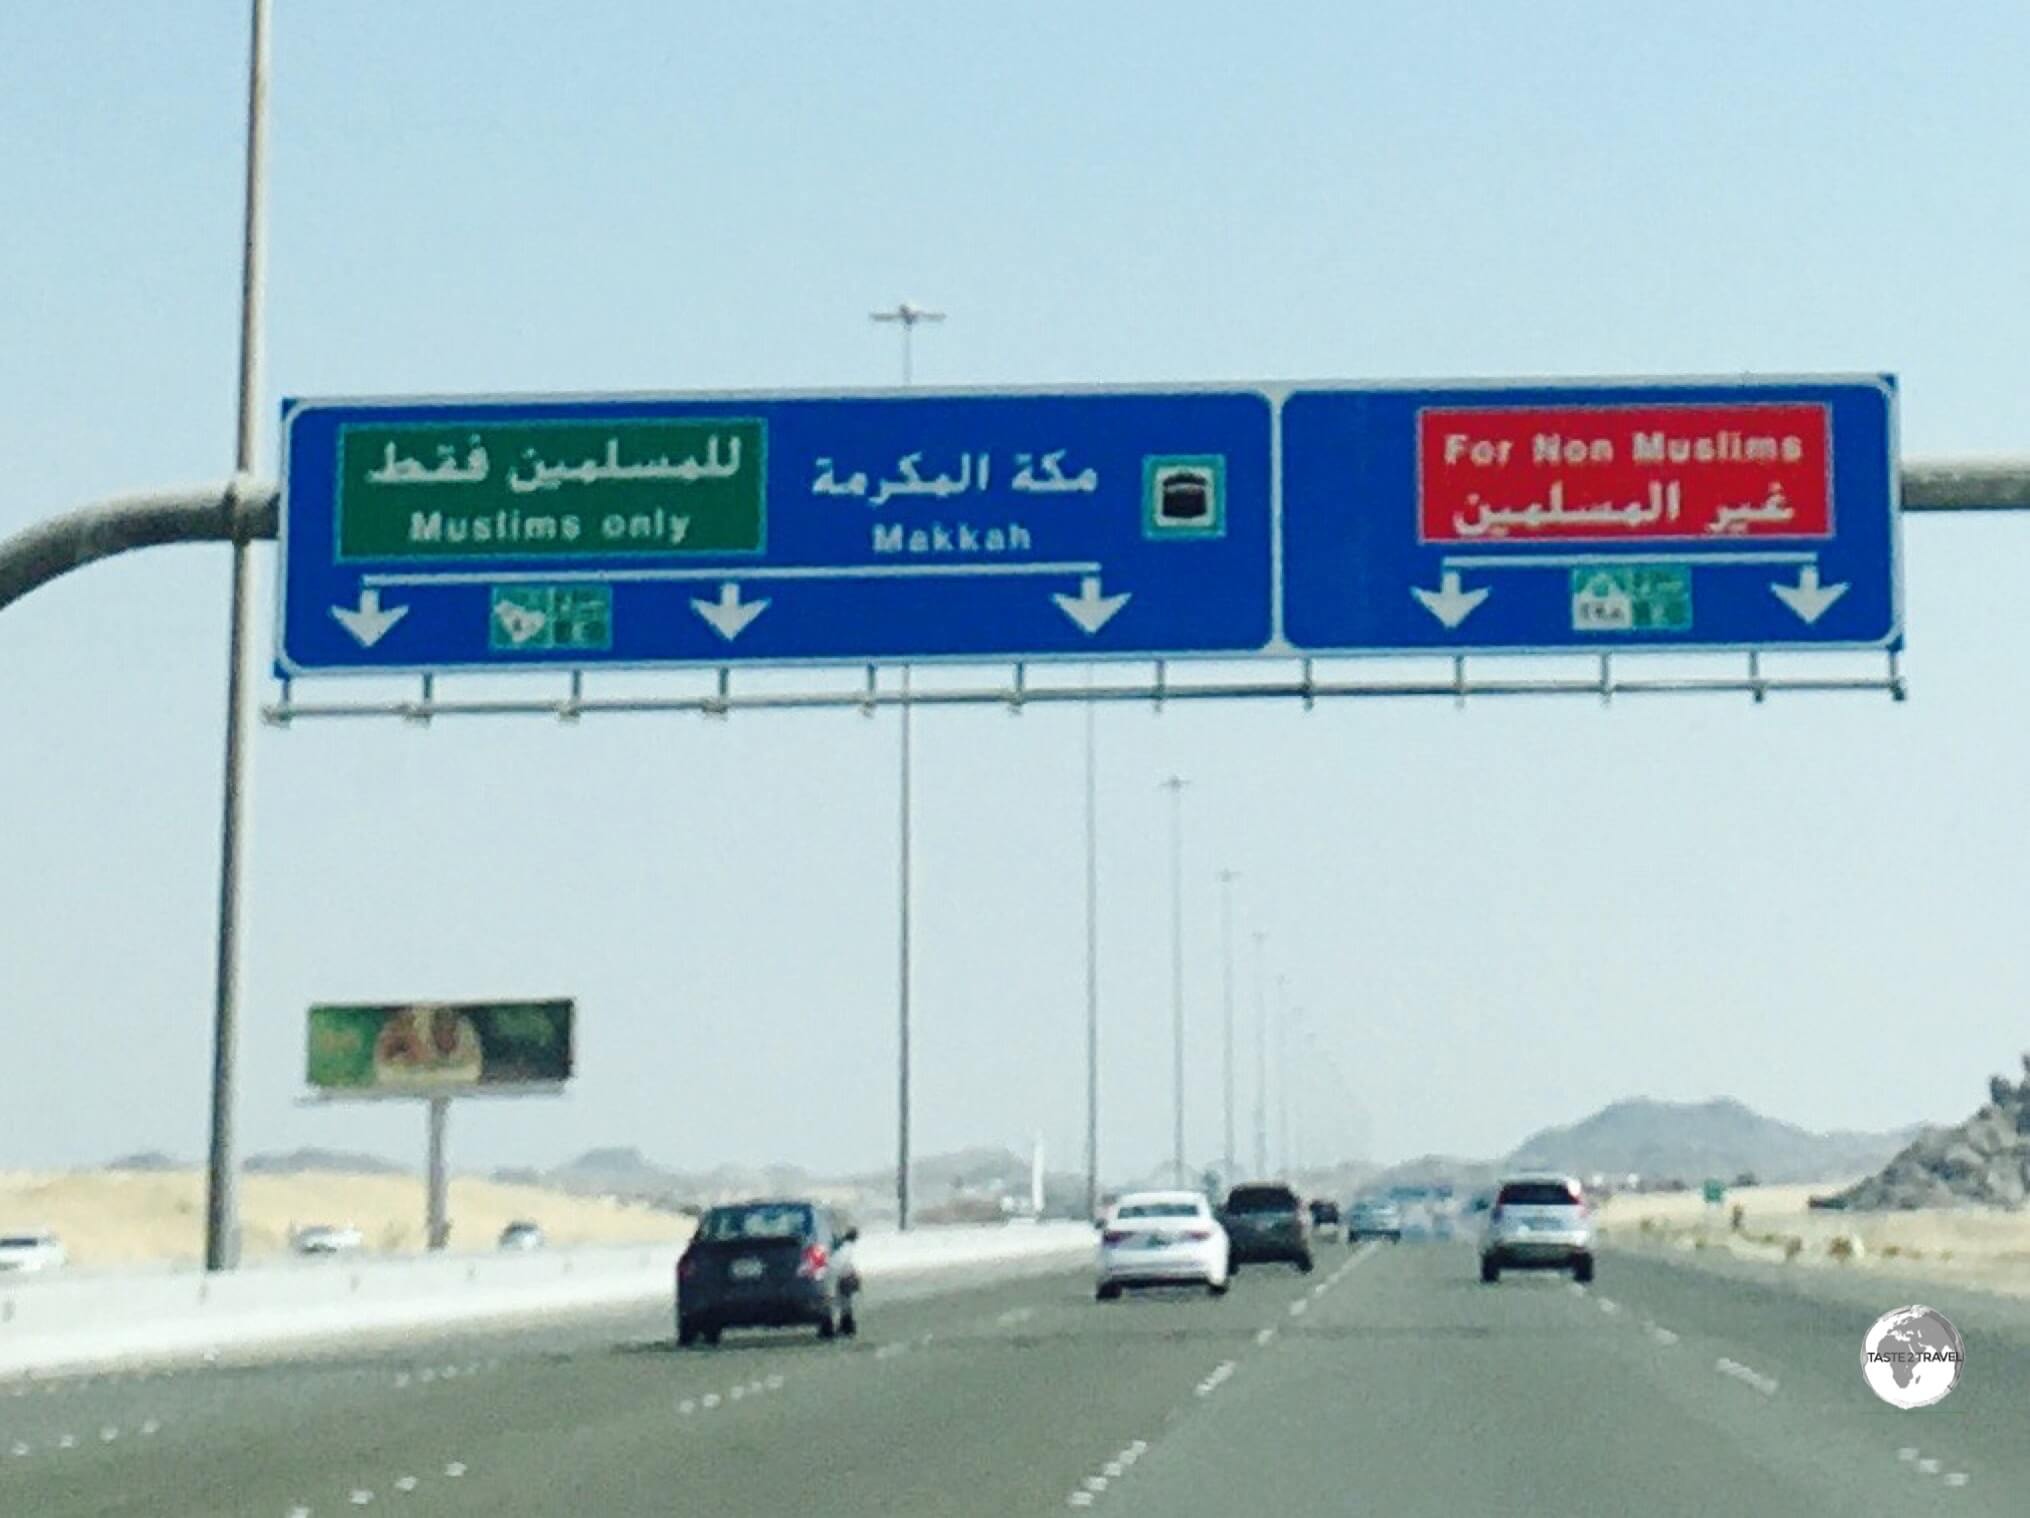 Non-Muslims must follow the red signs to avoid entering the holy city of Mecca.